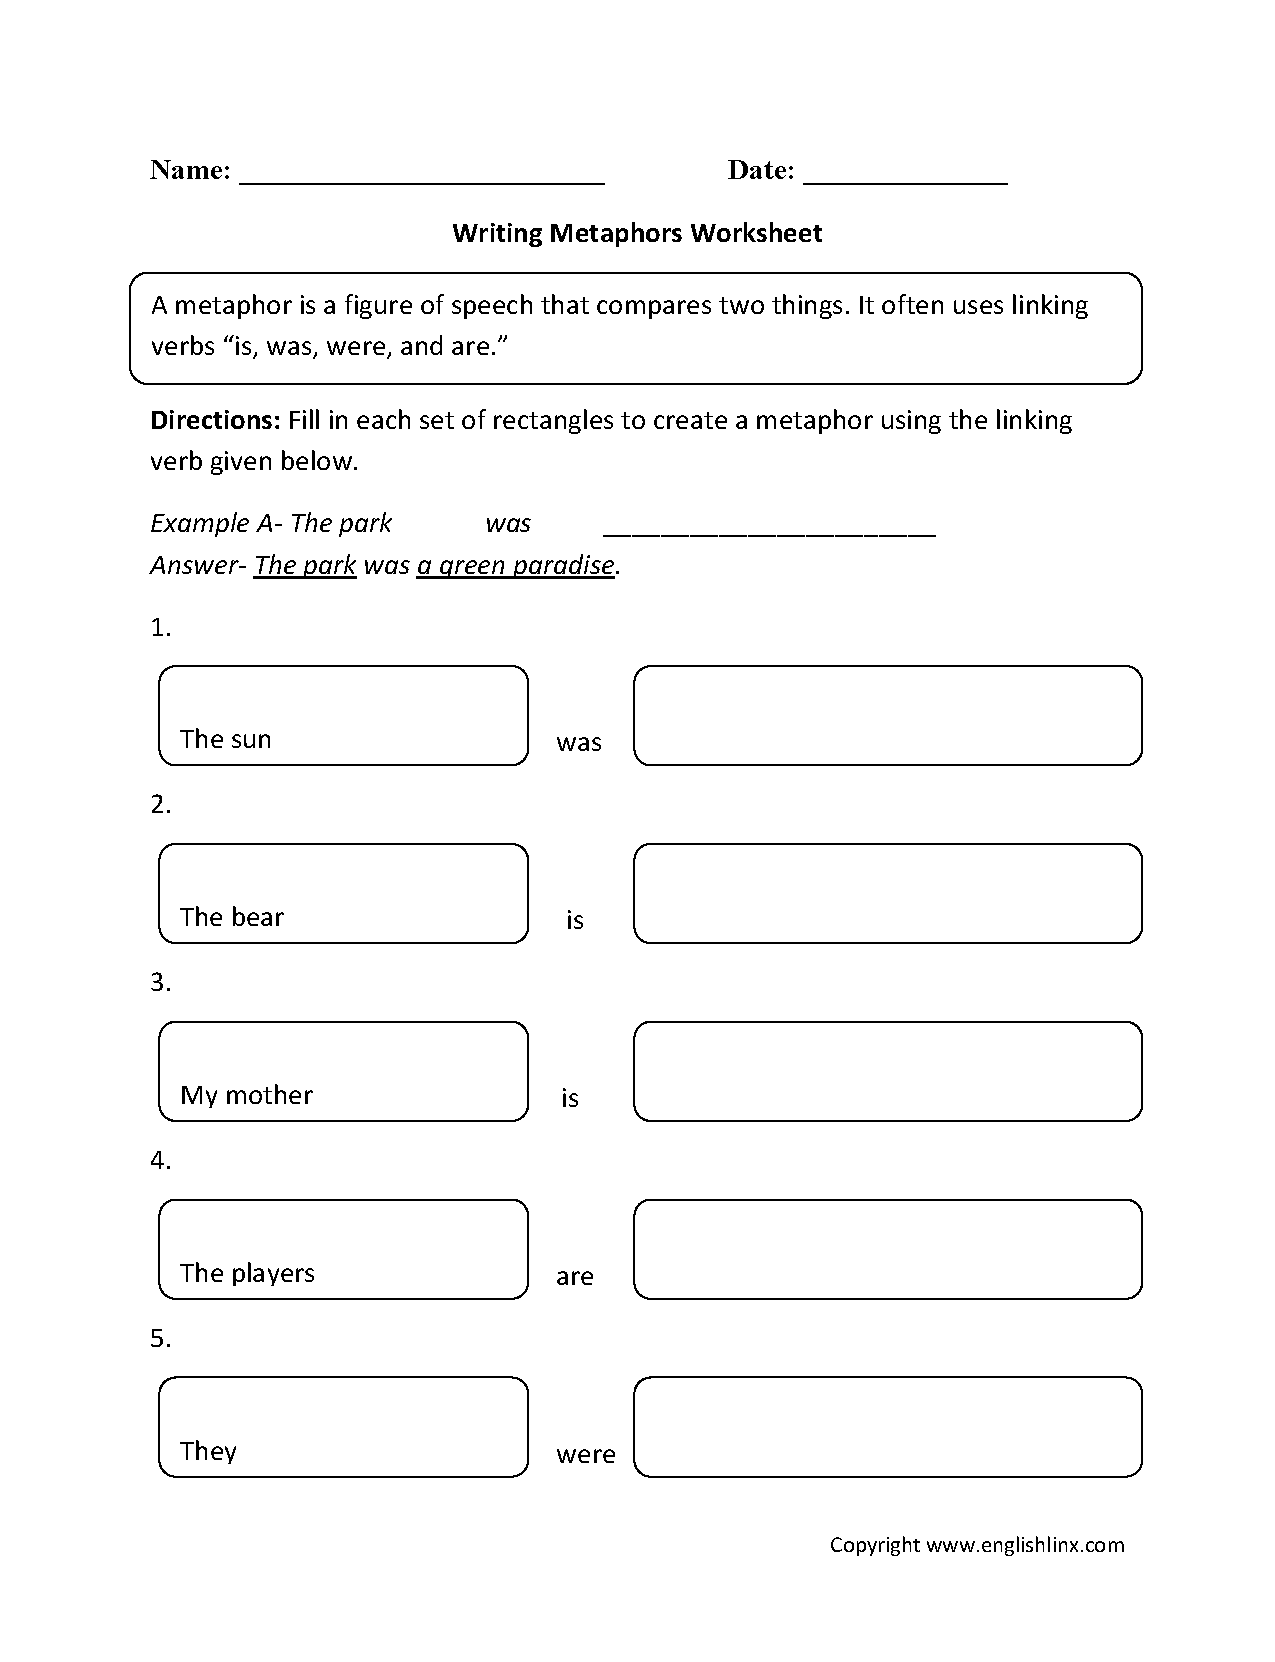 Aldiablosus  Surprising Englishlinxcom  Metaphors Worksheets With Licious Worksheet With Awesome Greater Than Less Than Worksheets Free Also  Dimensional Figures Worksheets In Addition Rd Grade Math Area And Perimeter Worksheets And Mathematics Worksheets For Grade  As Well As Reference Skills Worksheets Additionally Two By Two Multiplication Worksheets From Englishlinxcom With Aldiablosus  Licious Englishlinxcom  Metaphors Worksheets With Awesome Worksheet And Surprising Greater Than Less Than Worksheets Free Also  Dimensional Figures Worksheets In Addition Rd Grade Math Area And Perimeter Worksheets From Englishlinxcom